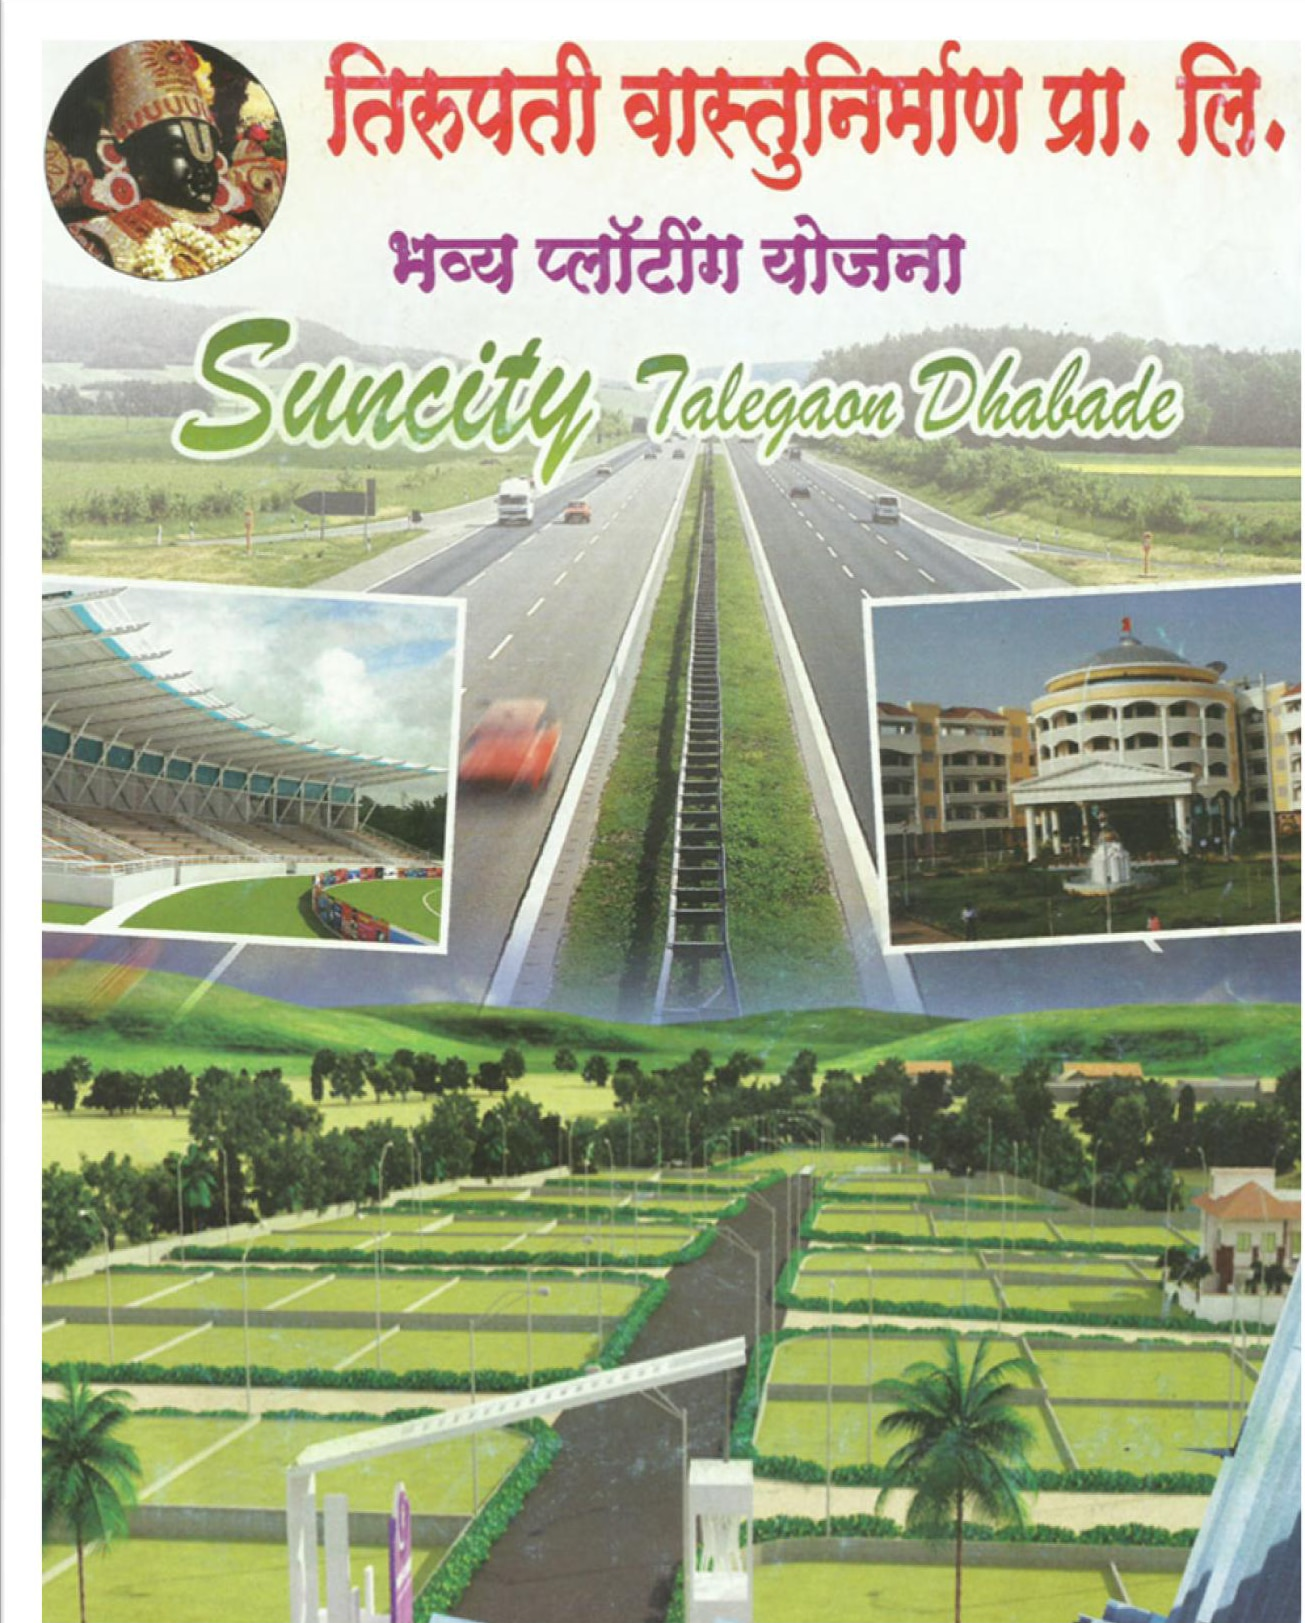 Project Details About the Project Suncity is a residential project by Tirupati Vastunirman. It has a thoughtful design and is well equipped with all the modern day amenities as well as basic facilities. The project offers various odd dimensional plots. Highlights Mumbai-Pune Highway Main Road 10 Minutes from Talegaon MIDC Area 10 Minutes from Shirgaon Very Close to Talegaon Market Close Proximity to Express Highway